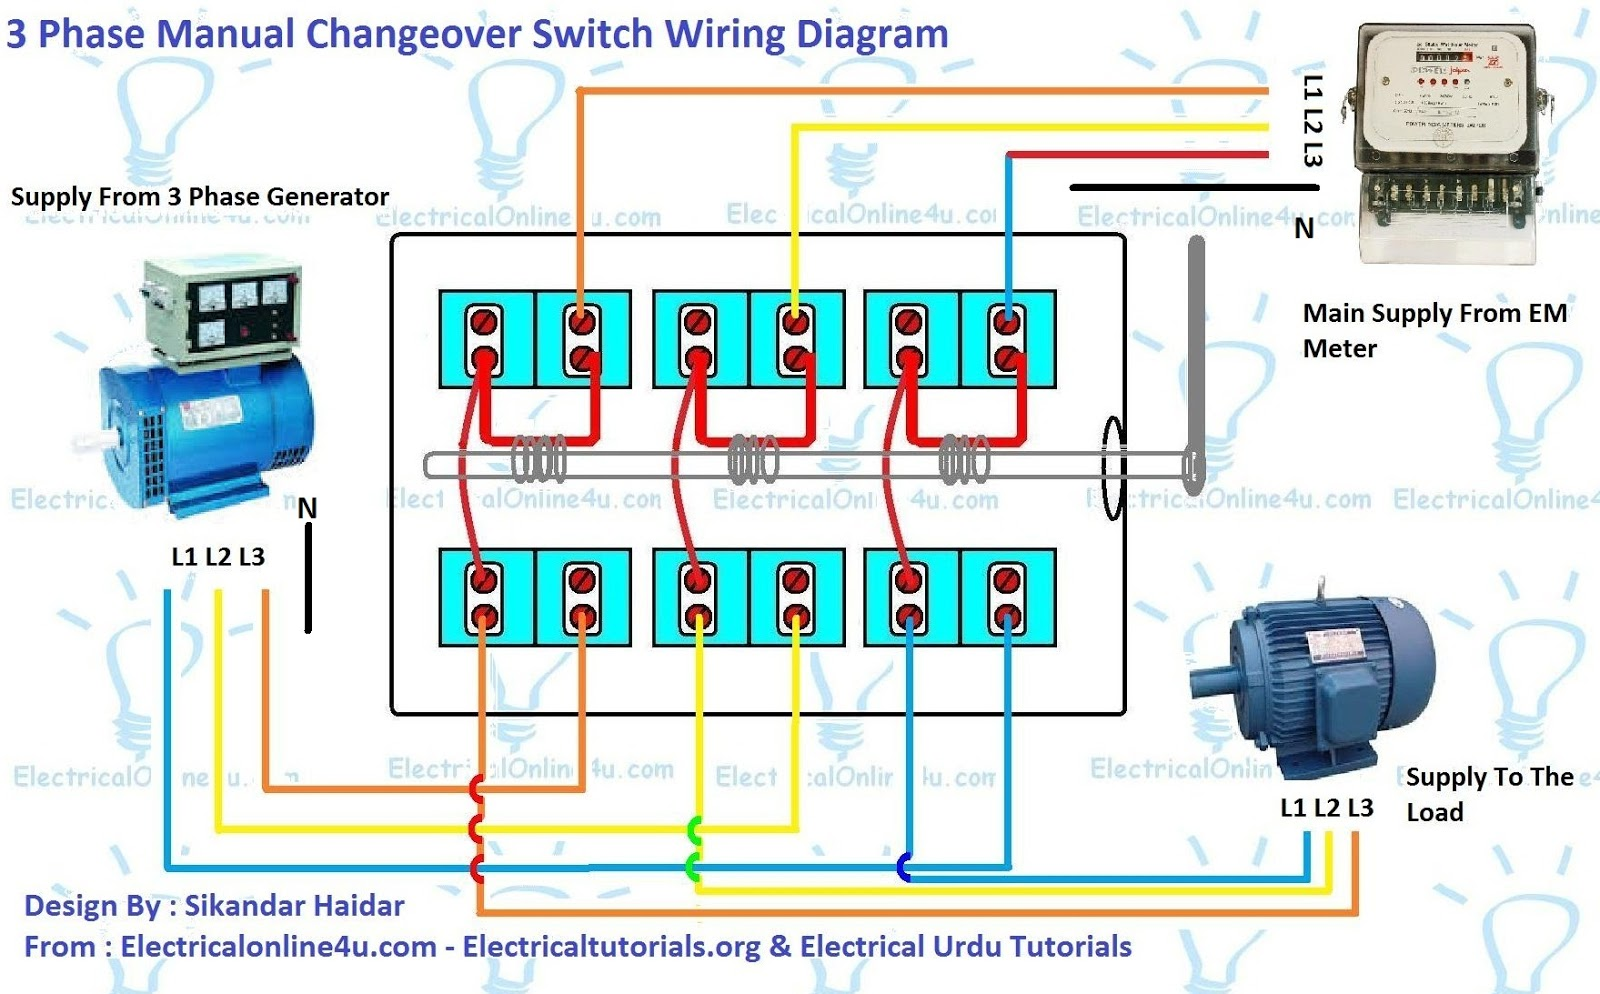 medium resolution of 3 phase manual changeover switch wiring diagram for yamaha g9 wiring diagram 1990 yamaha golf